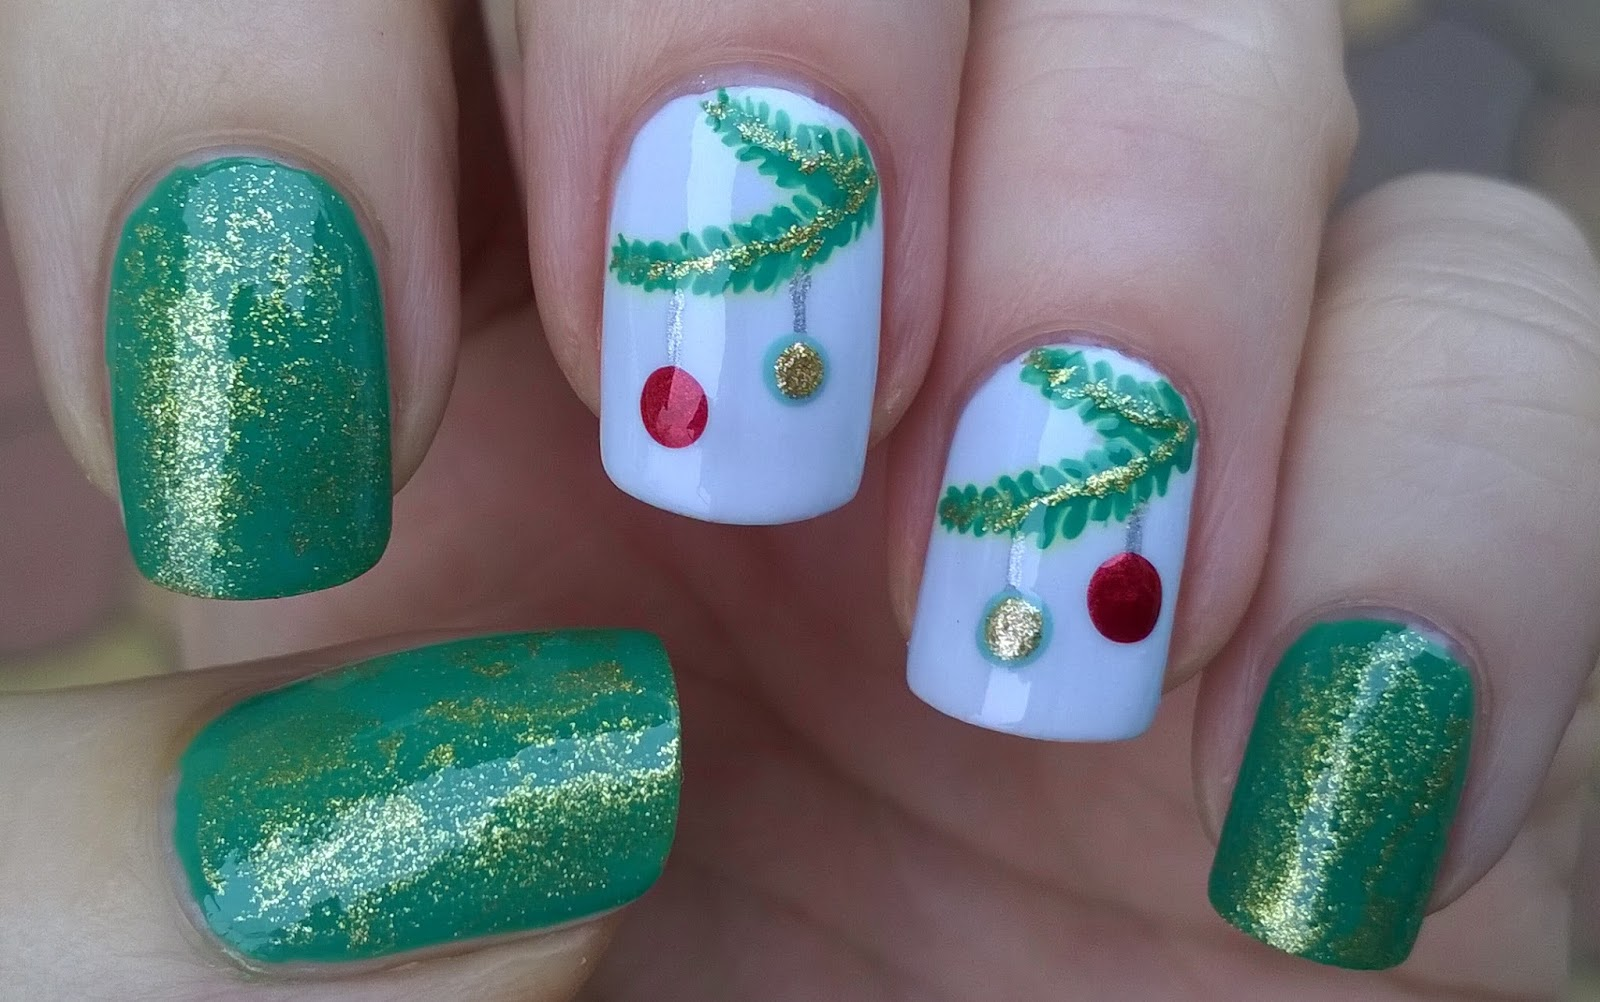 Nail Art Christmas Tree Lights | www.topsimages.com